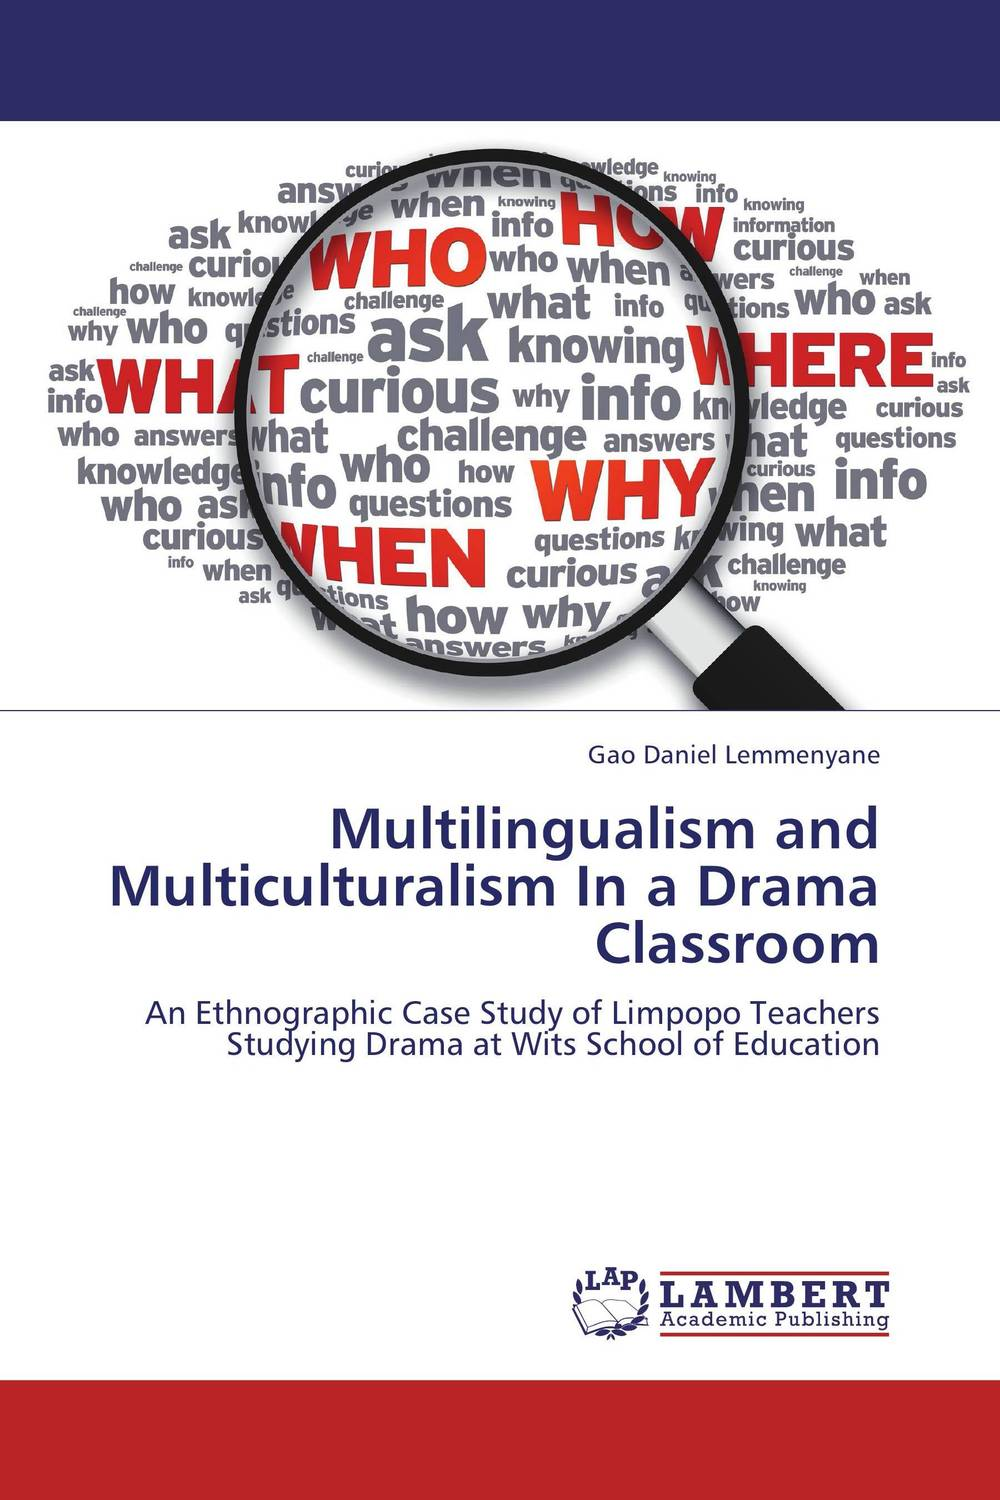 Multilingualism and Multiculturalism In a Drama Classroom sociolinguistic identity of african learners in multiracial schools